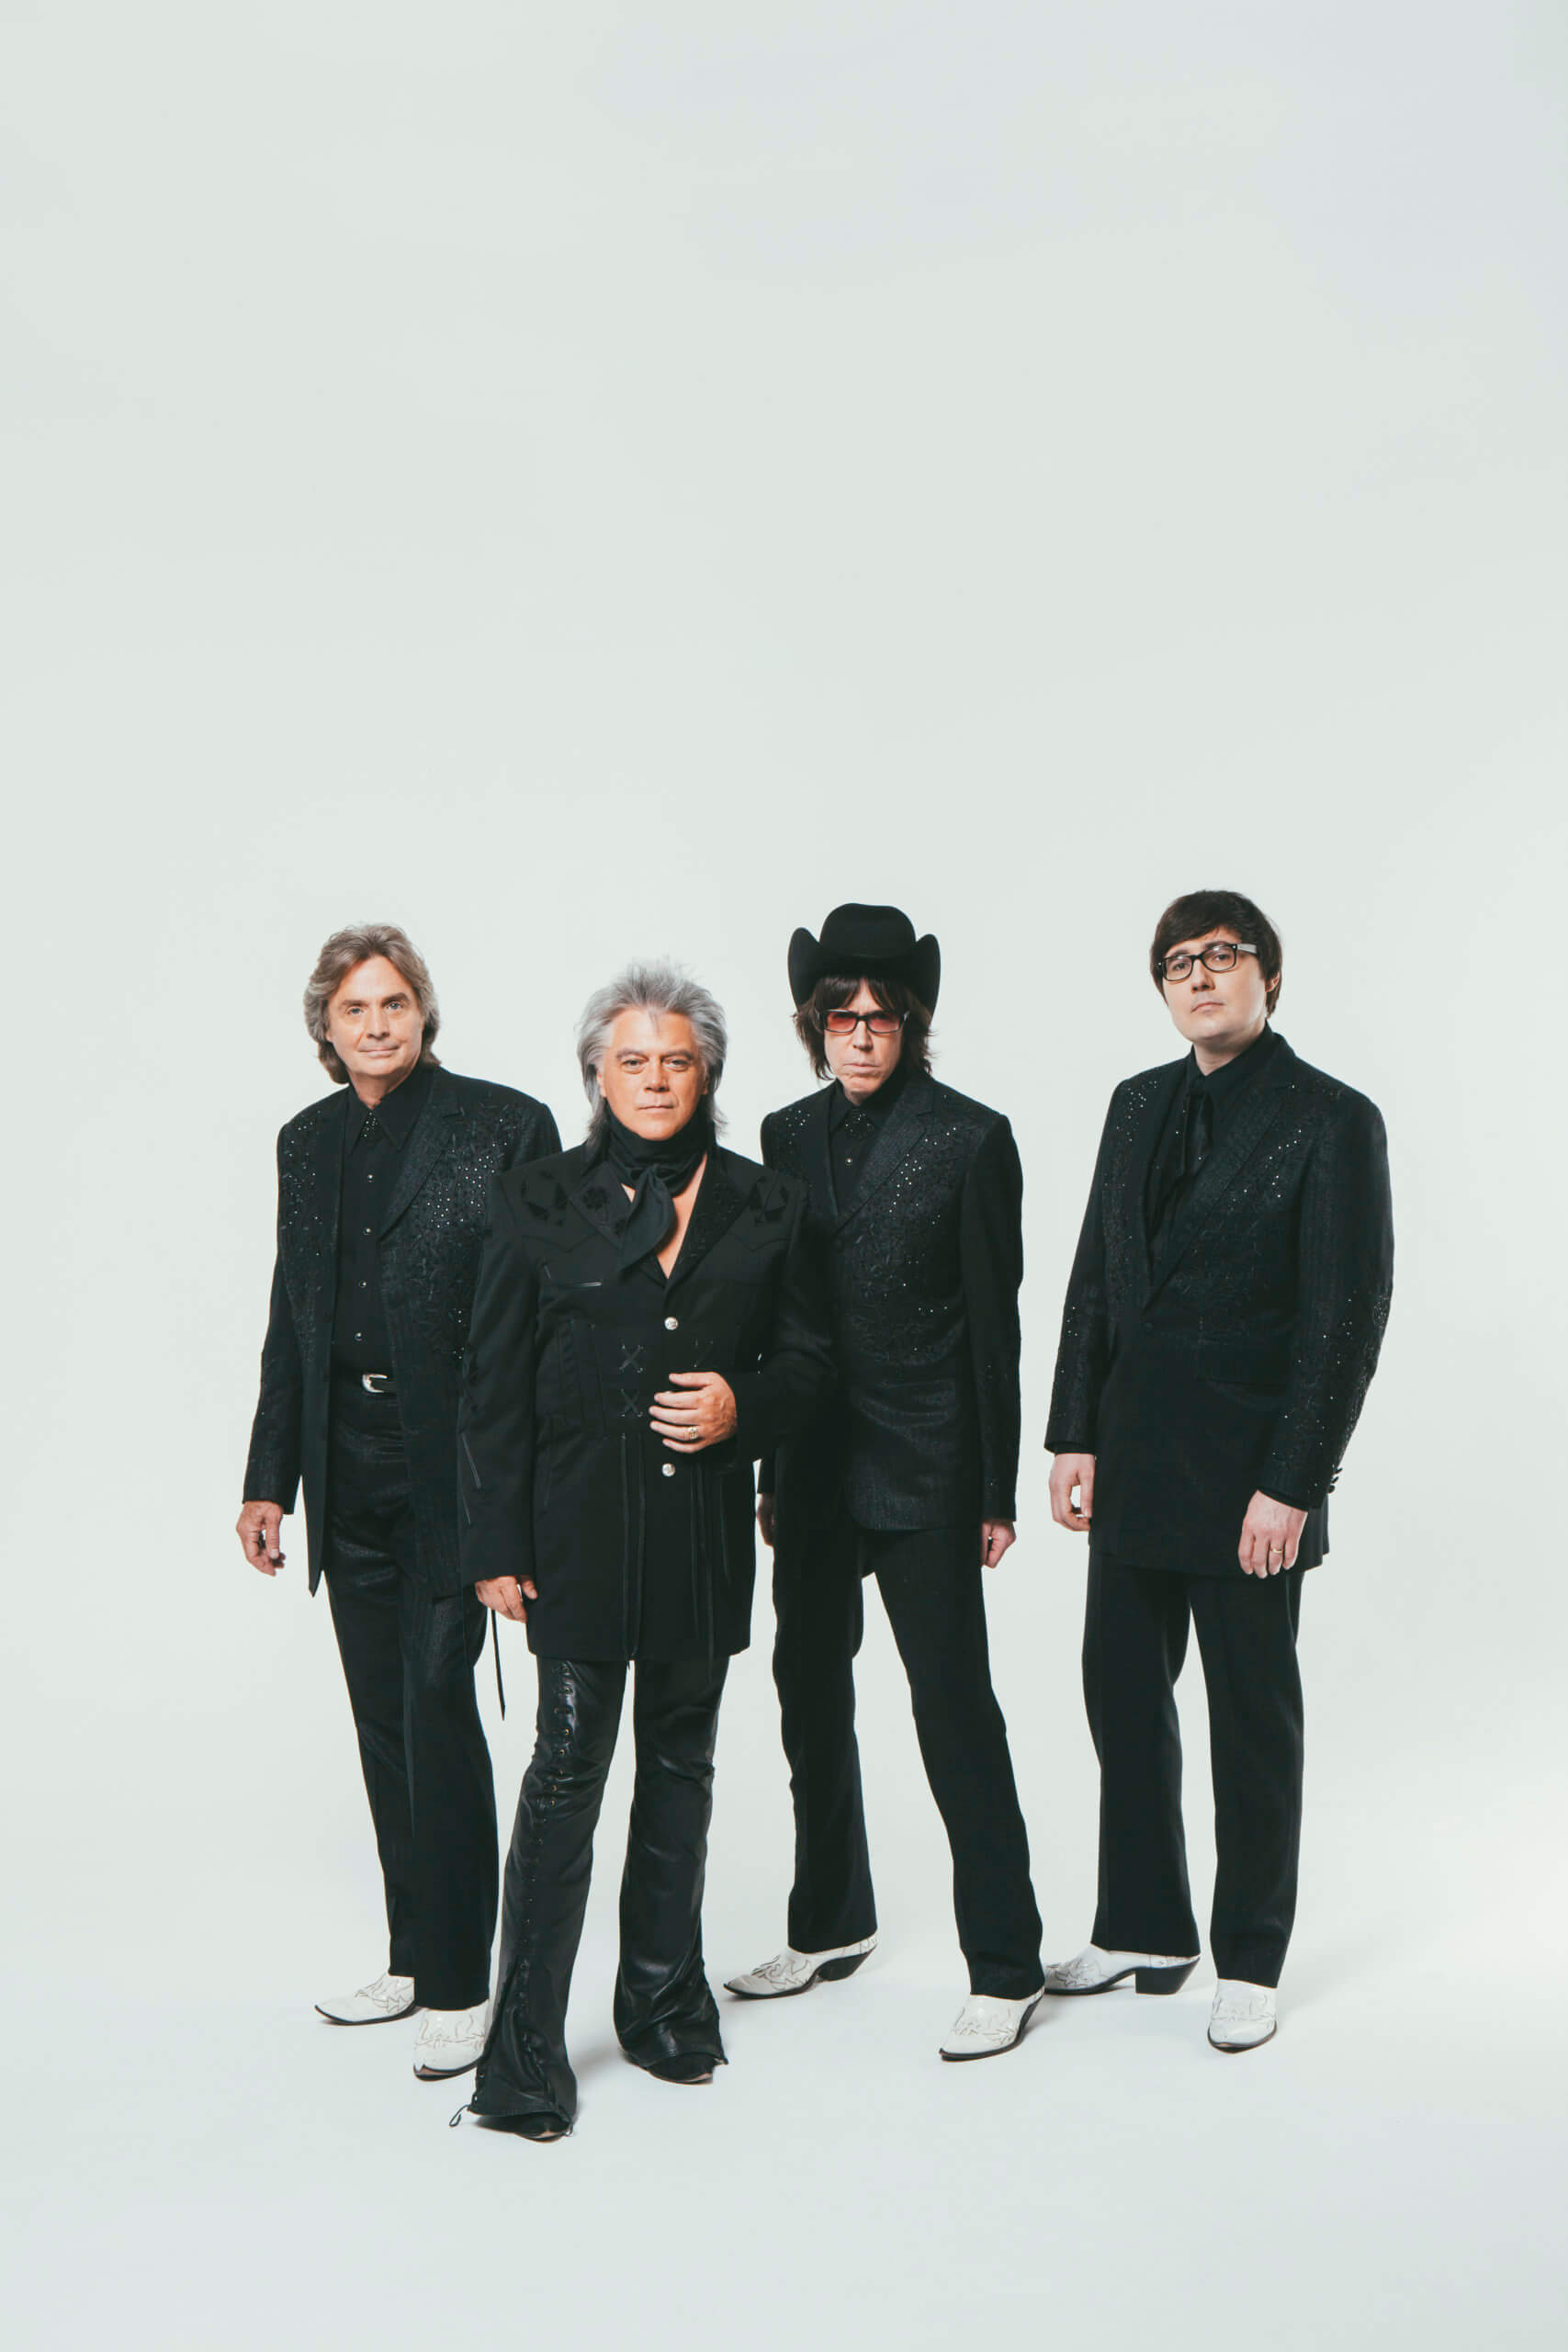 Revisit: Marty Stuart's Way Out West: A Country Music Odyssey